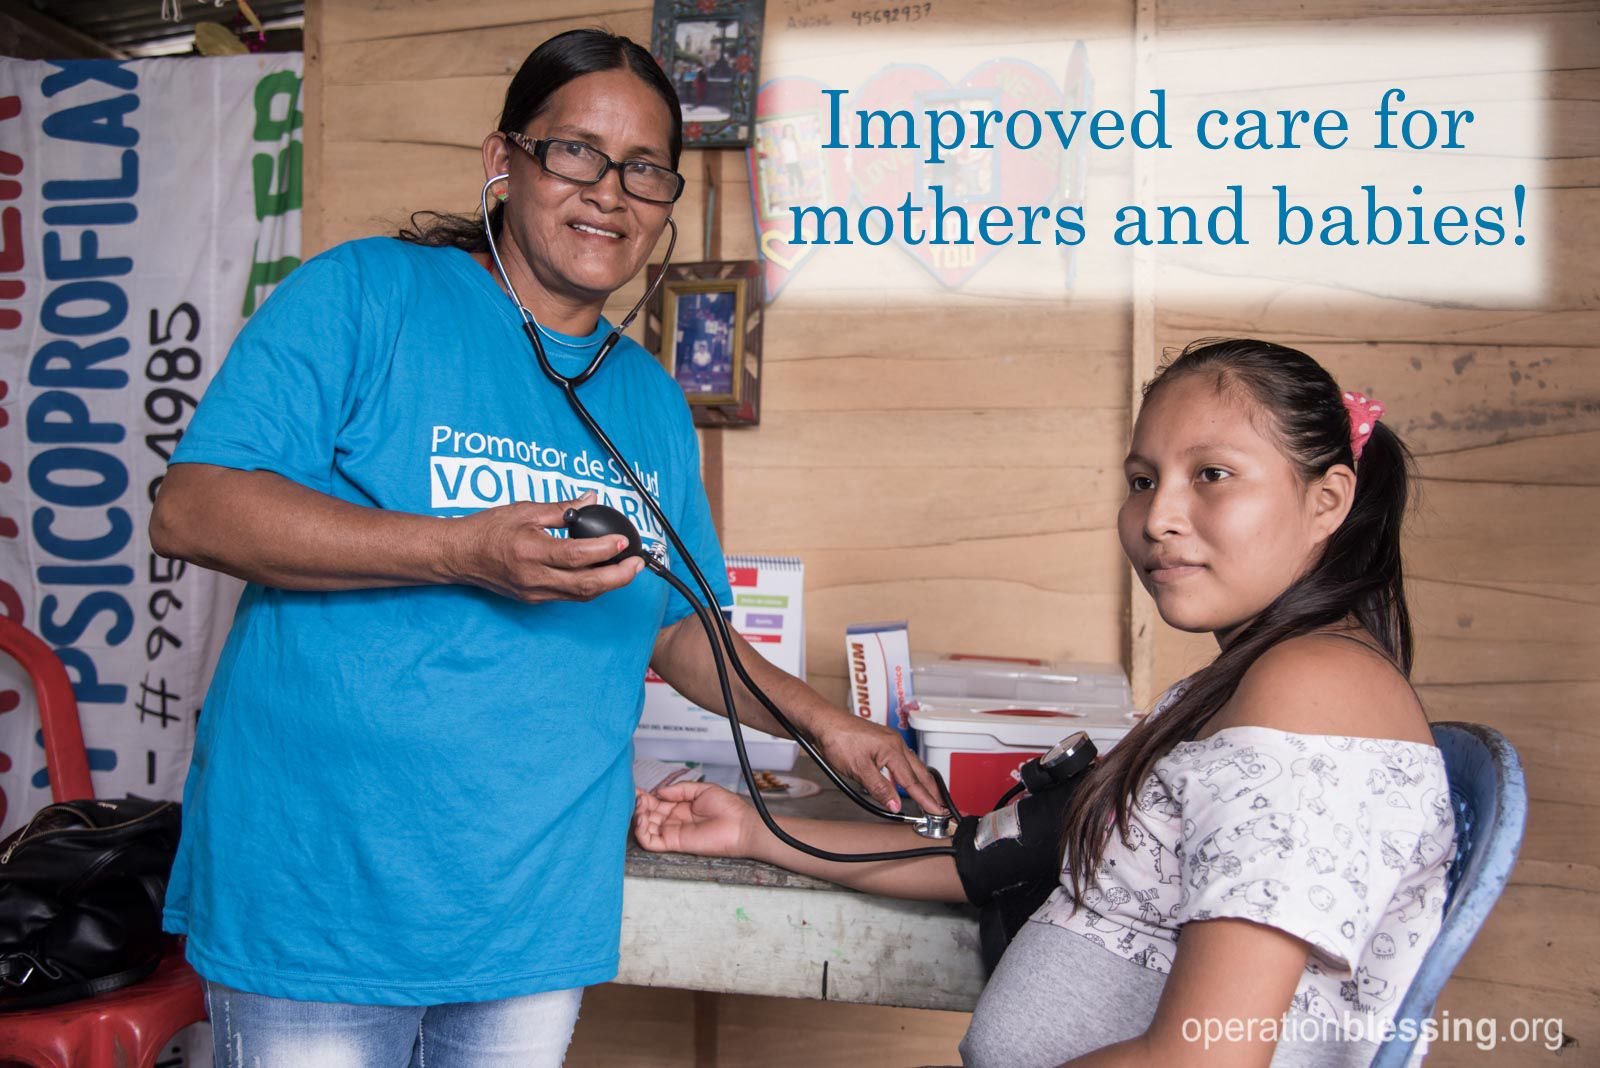 Three years ago, Elsa began attending classes with Operation Blessing to become a community health worker. Health workers are trained to be first responders and agents of change in their vulnerable villages on the topics of prenatal care, wound treatment and general first aid. Read more of her story here...